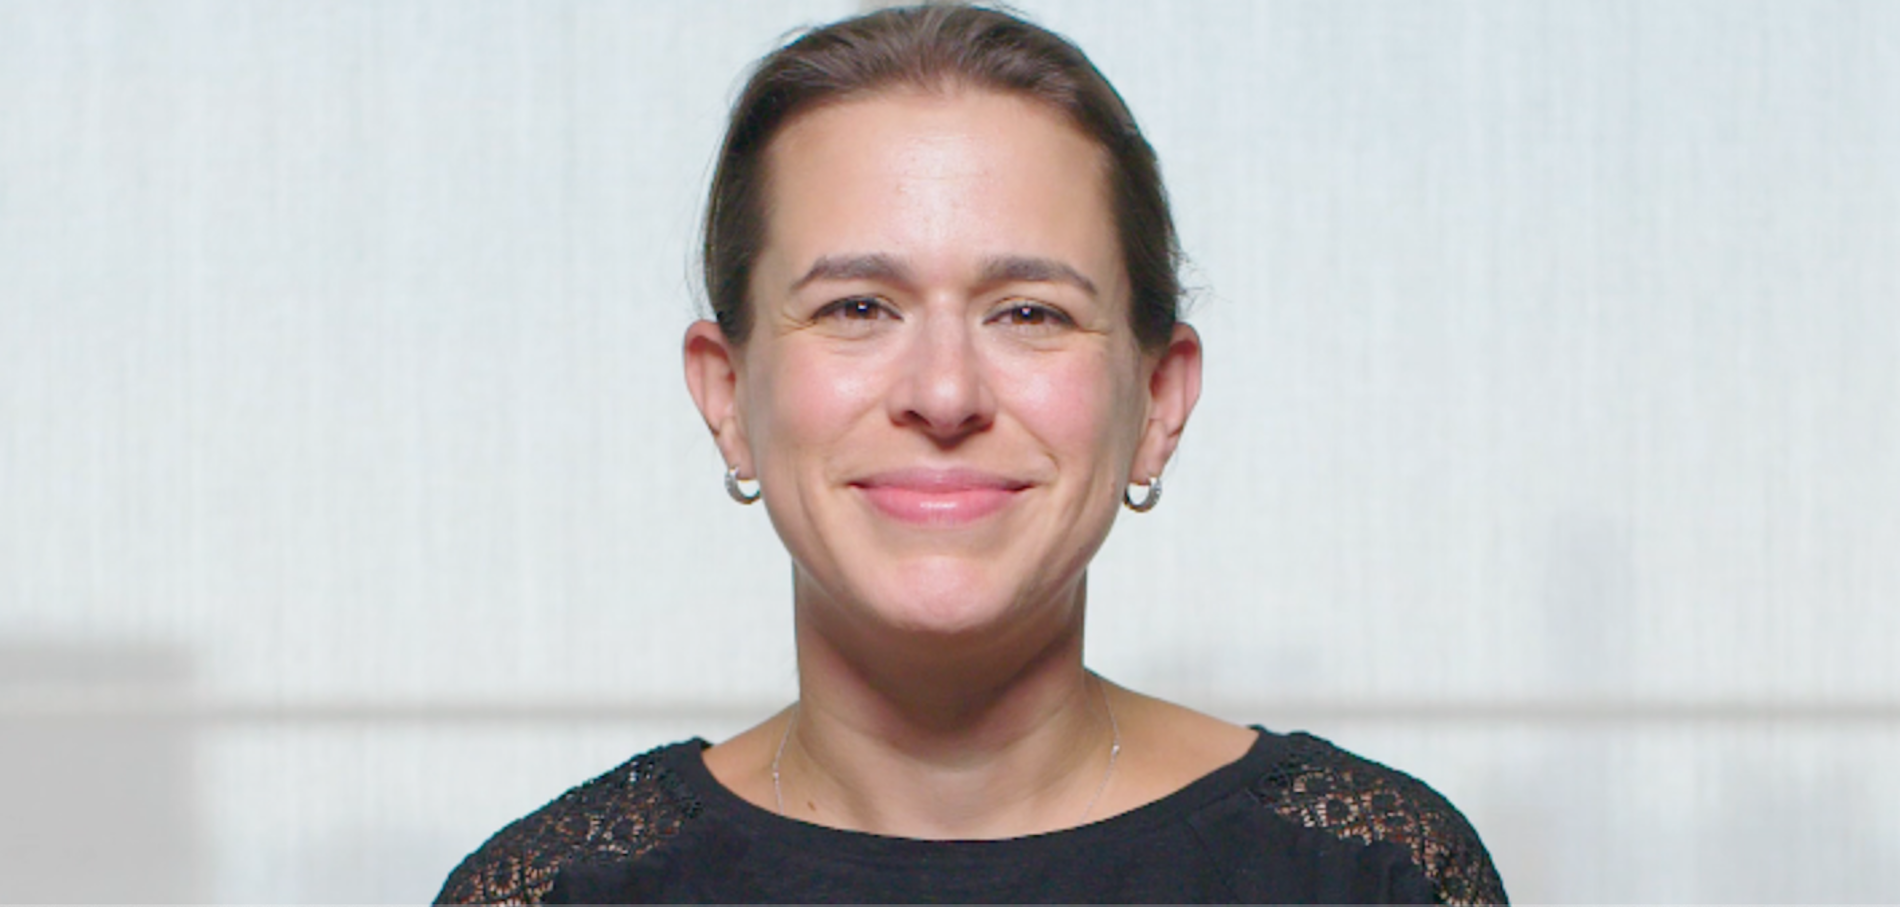 Meet Orthodox Jewish All Star, Karen Barrow, Senior Editor, New York Times